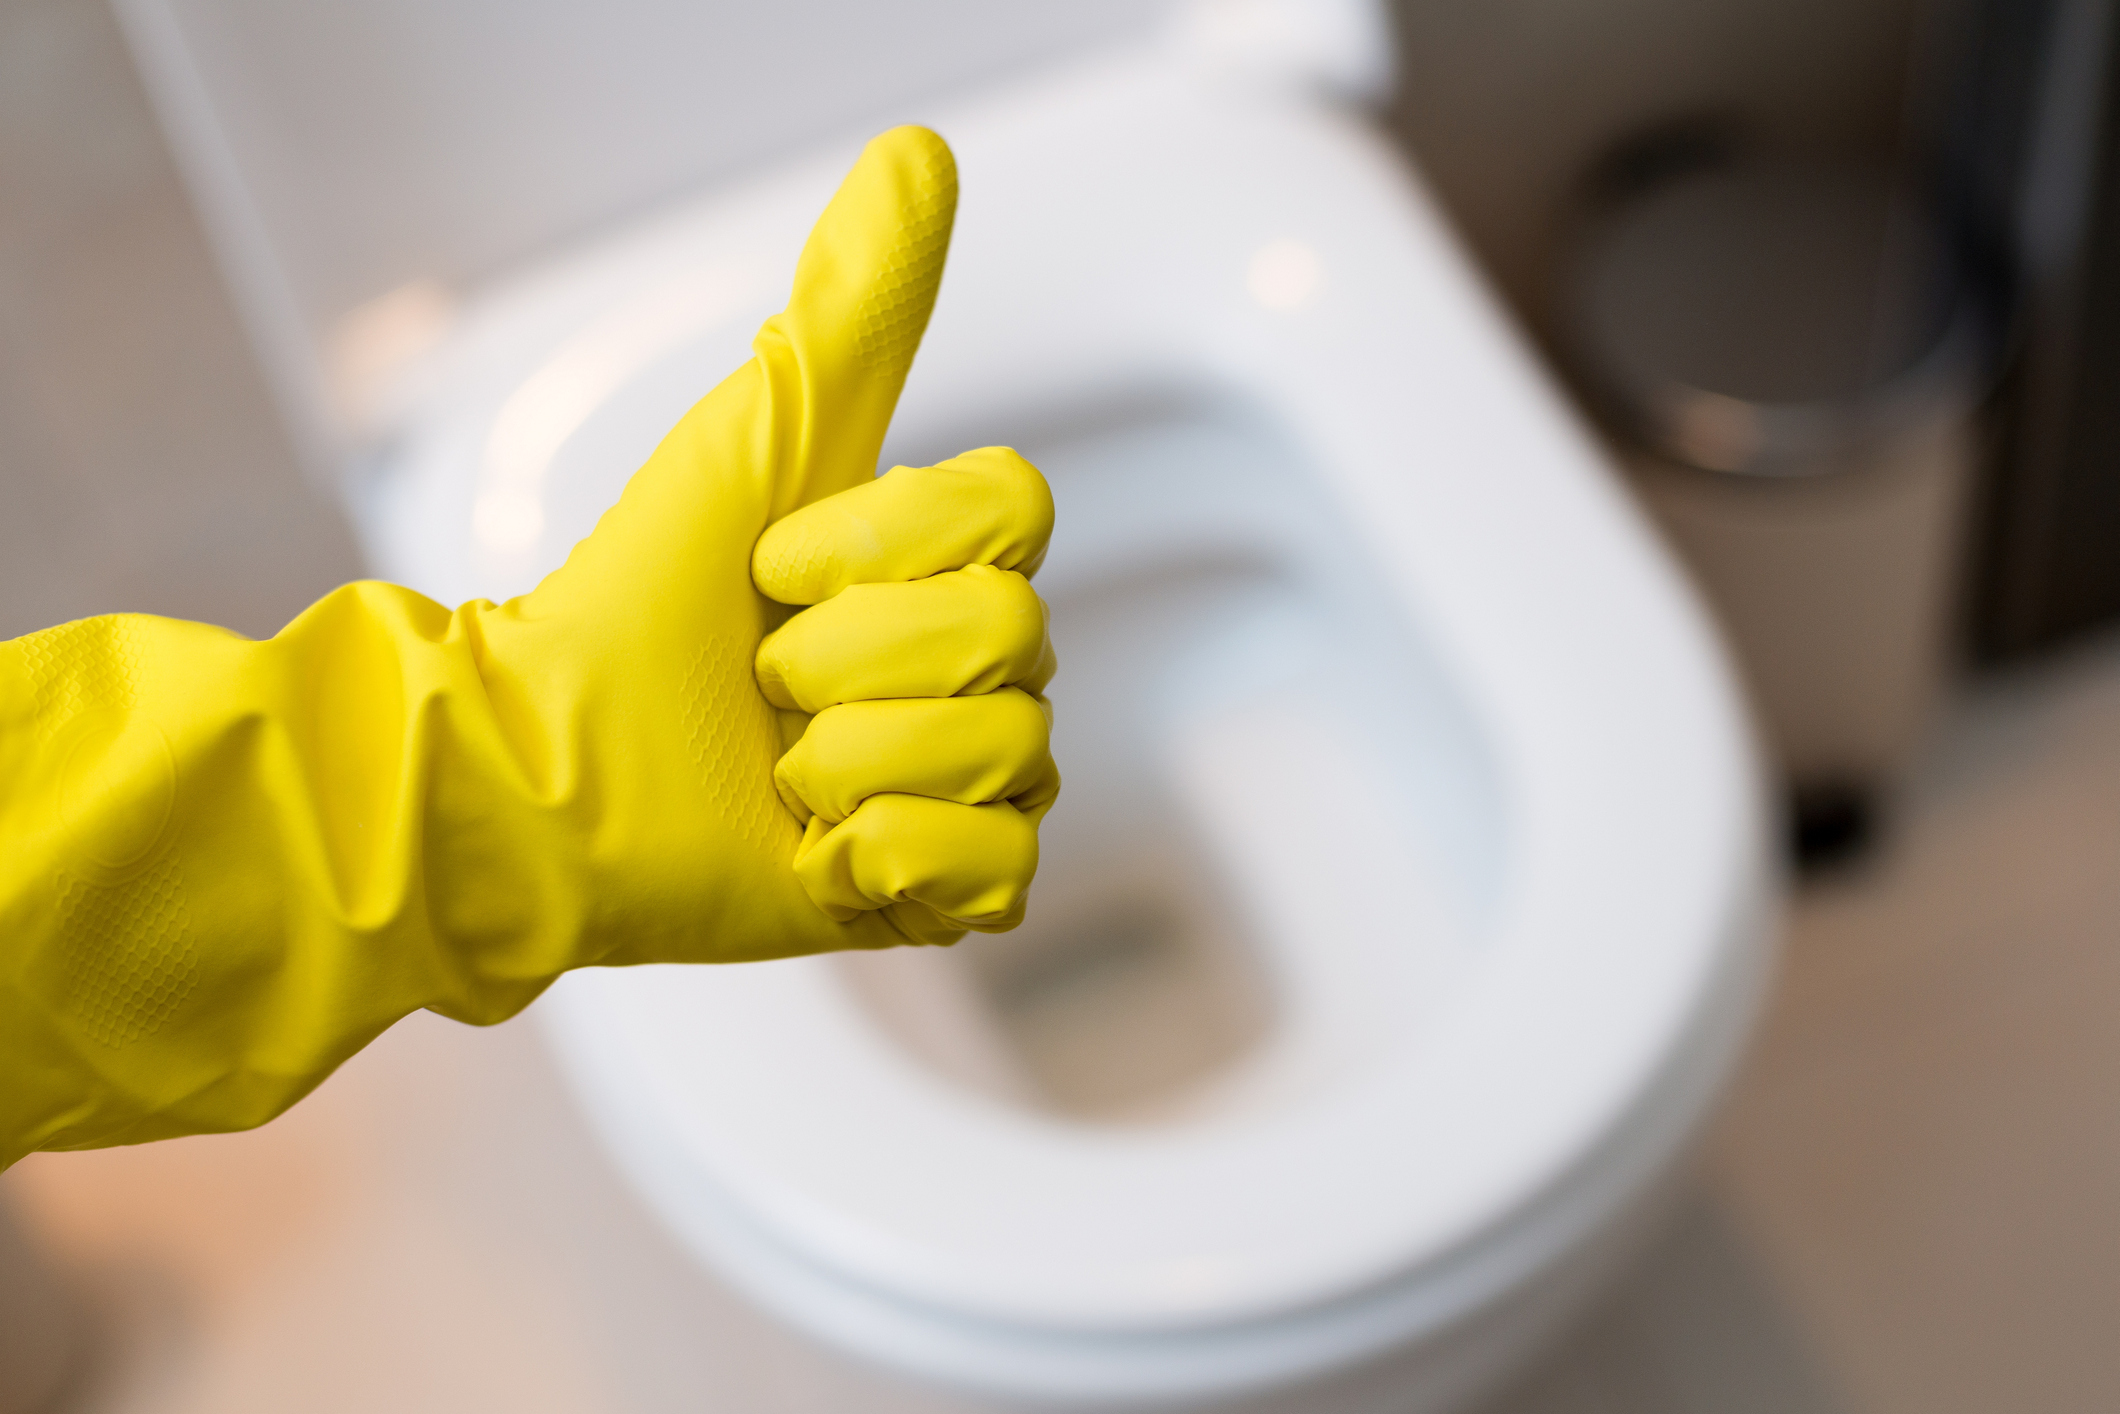 hand with glove showing thumb up sign against clean toilet